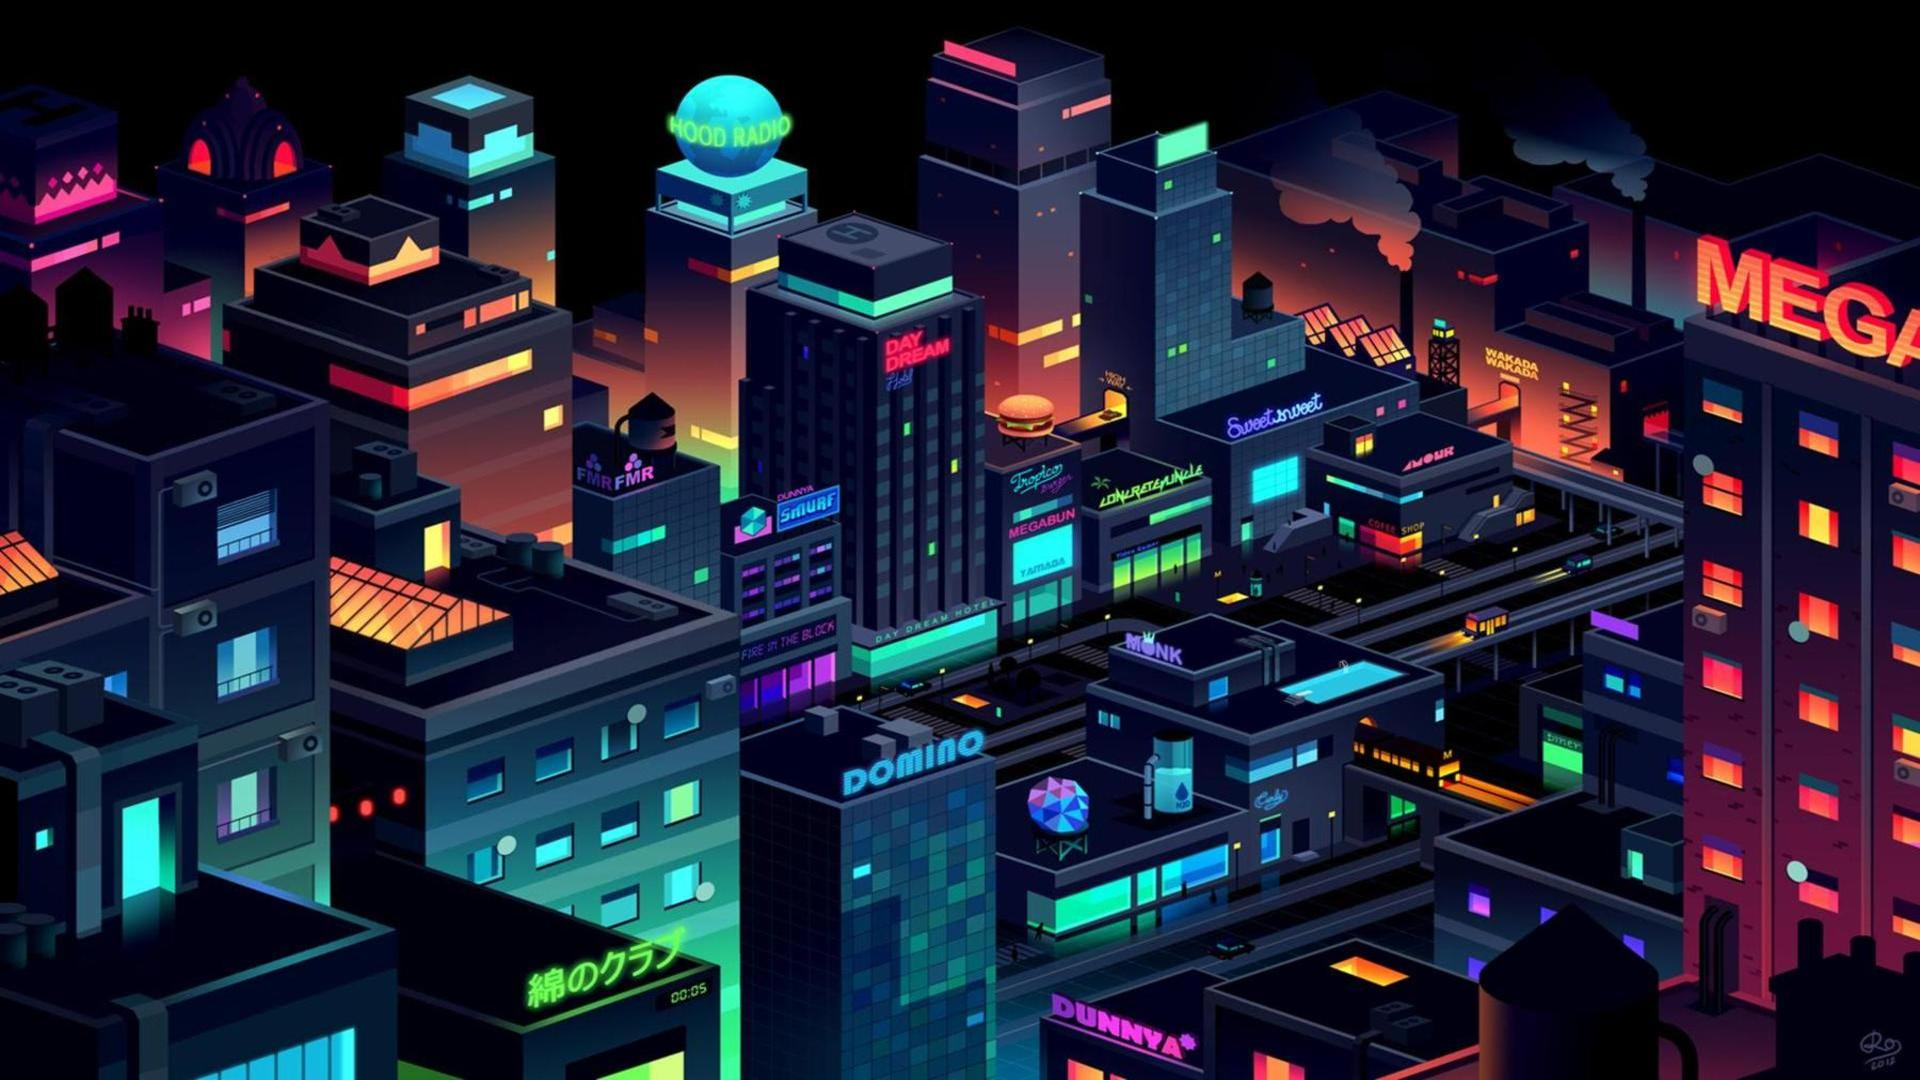 Download Neon City Wallpaper Gallery